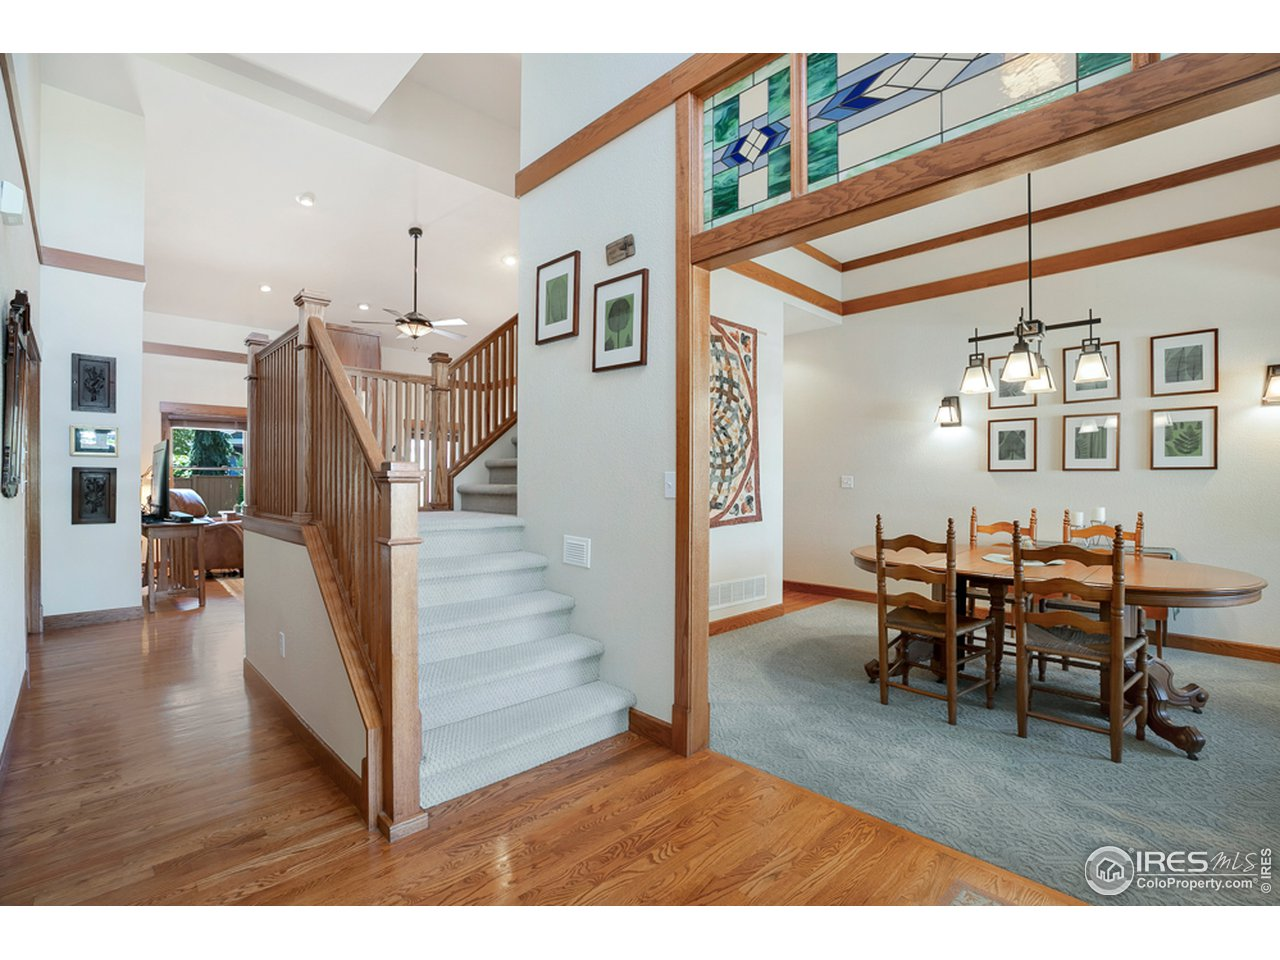 Inviting front entry with beautiful craftsman style details